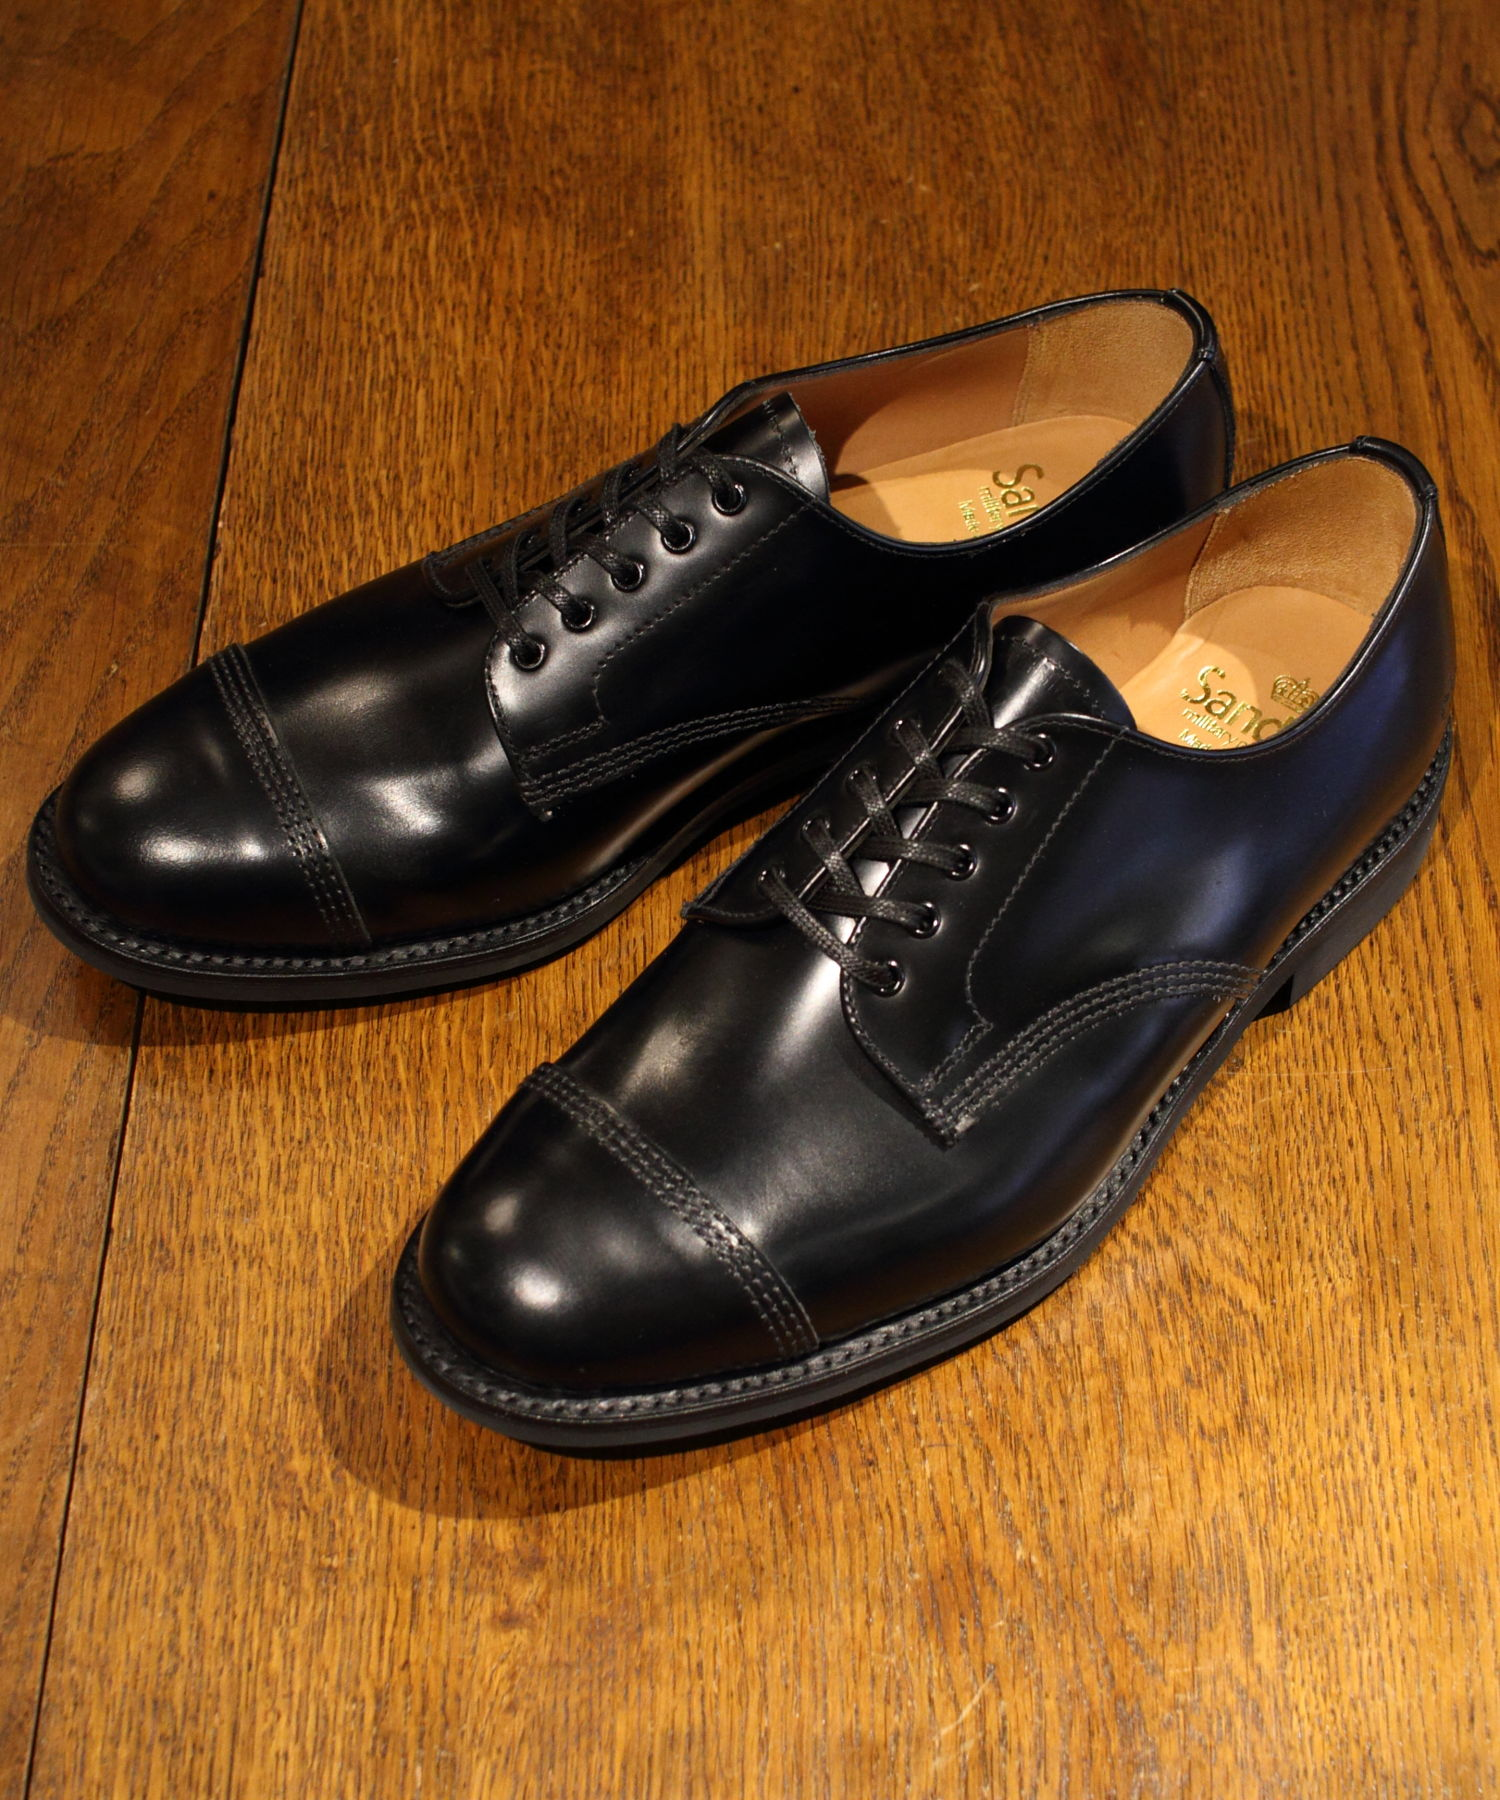 SANDERS / サンダース ミリタリーダービーシューズ MILITARY DERBY SHOES